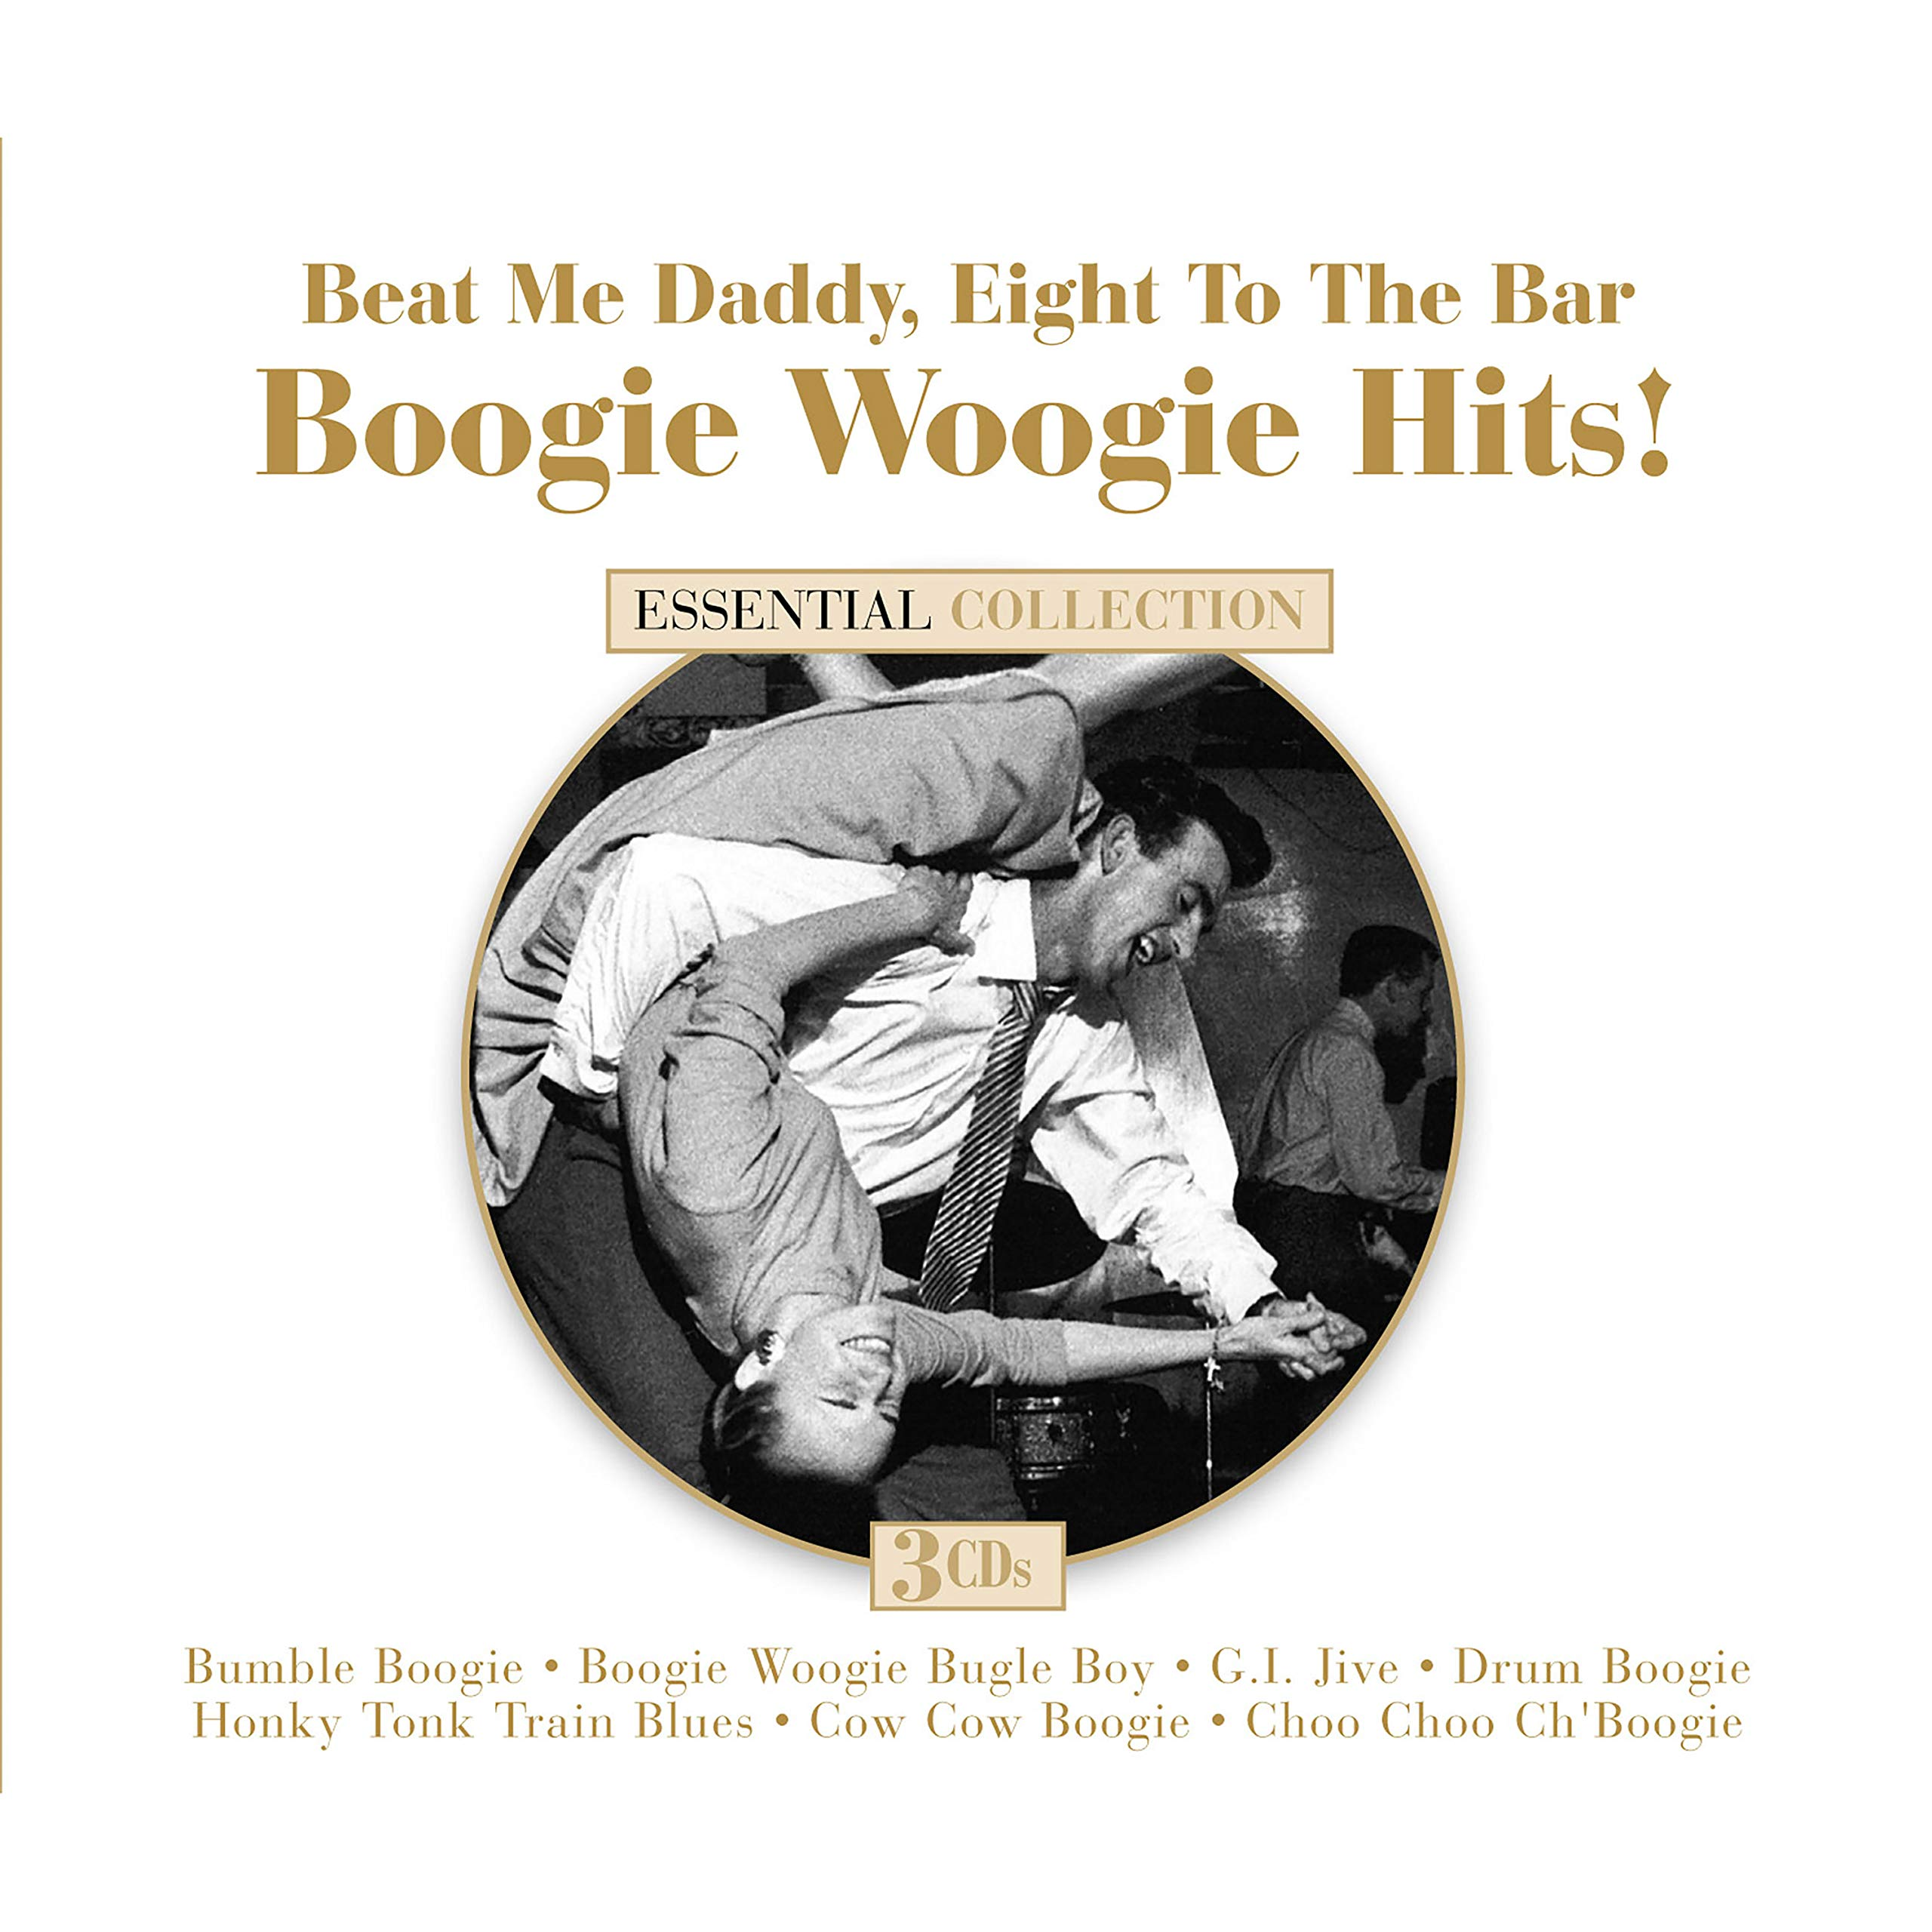 Beat Me Daddy Eight To The Bar: Boogie Woogie Hits